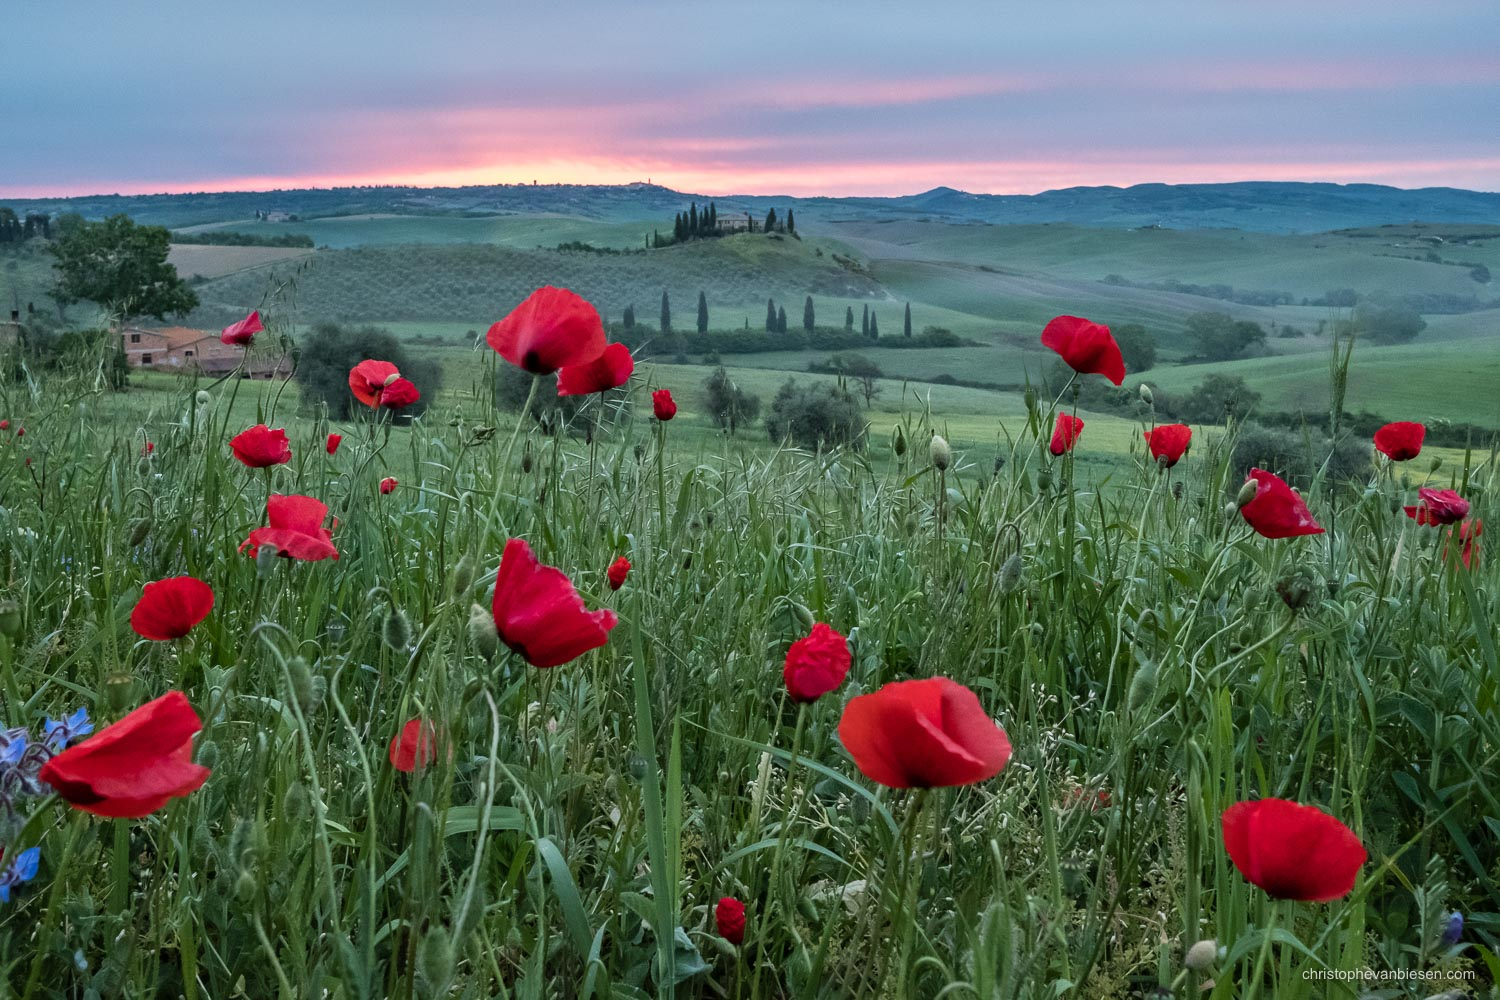 Tuscany - Italy - Sunrise in Tuscany's Val d'Orcia near San Quirico d'Orcia - Tuscan Rubies